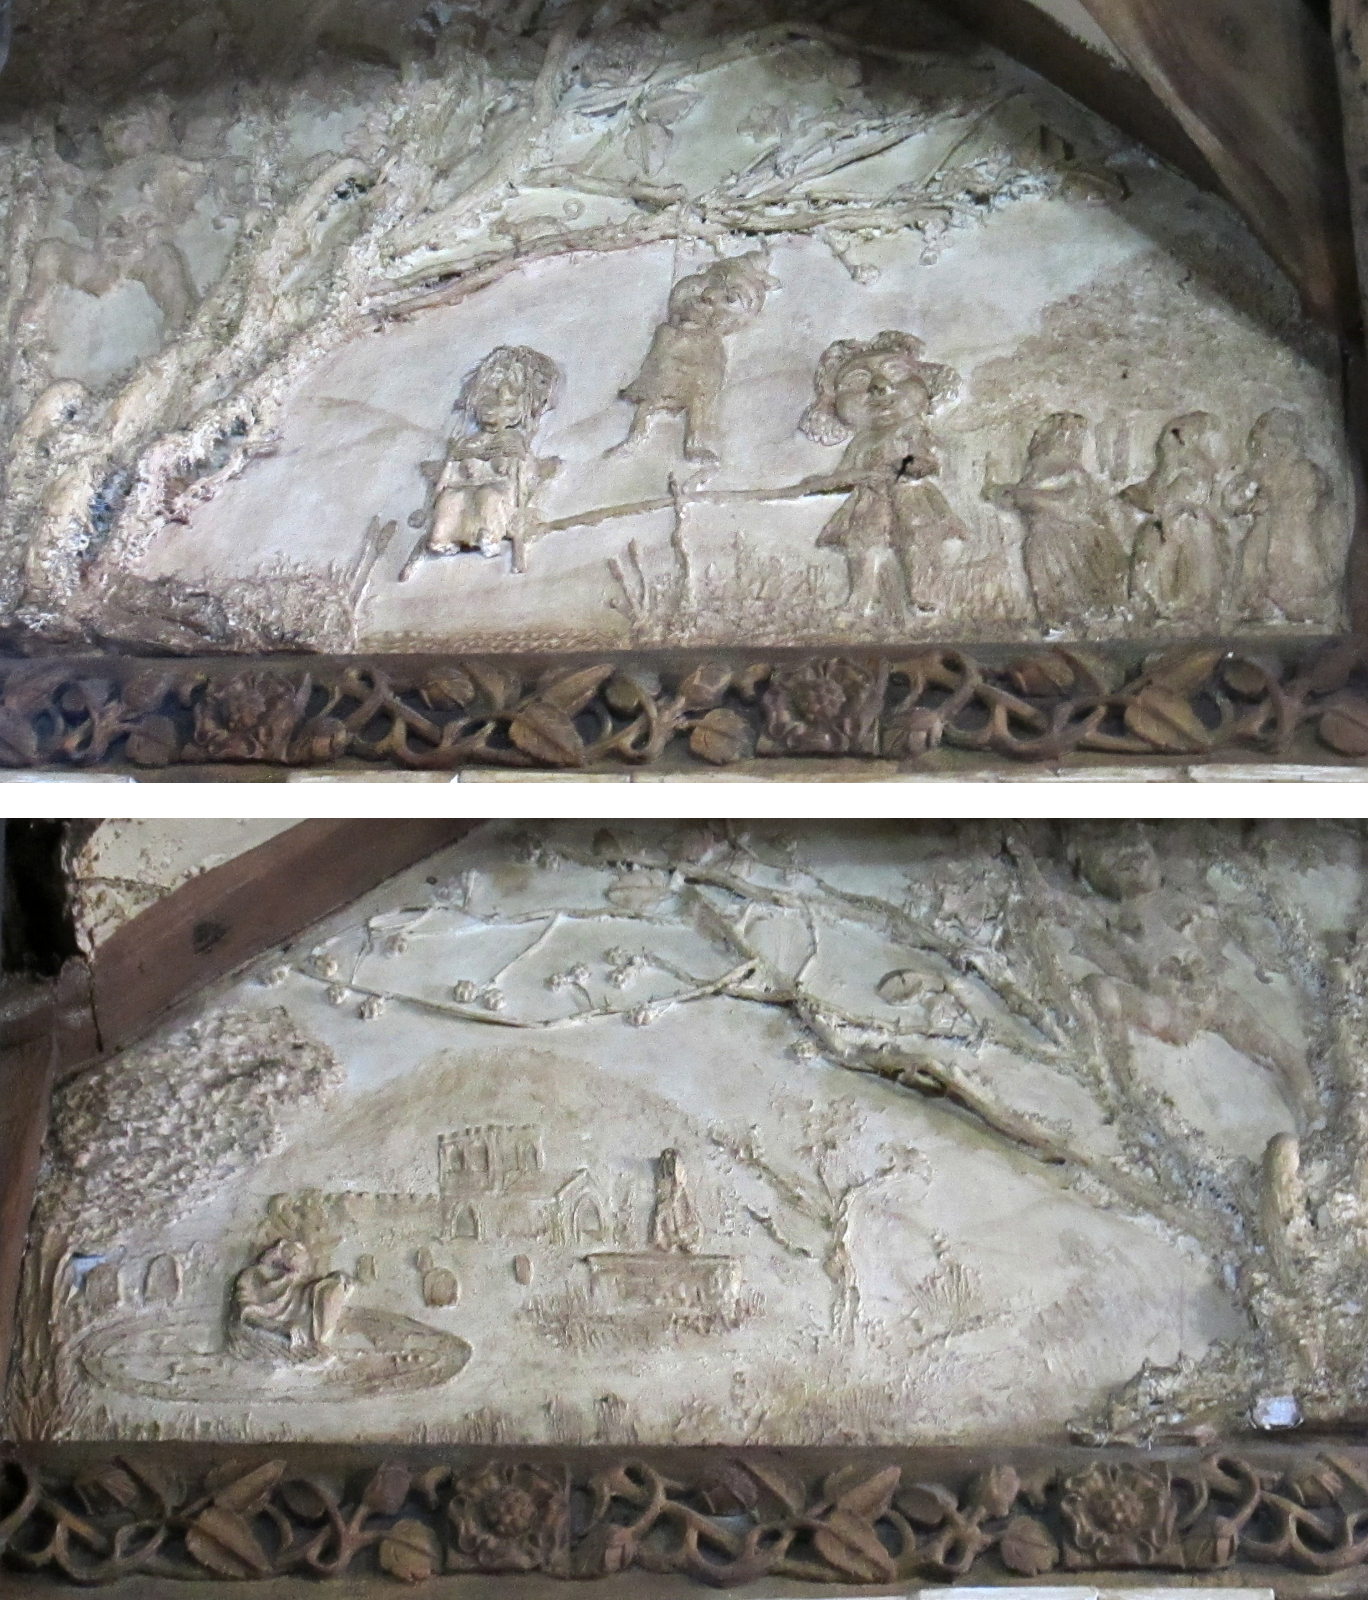 Scenes from the plaster frieze at Y Sospan, Dolgellau, showing trial and execution of witches (above) and a necromancer raising the dead (below) © Remy Dean